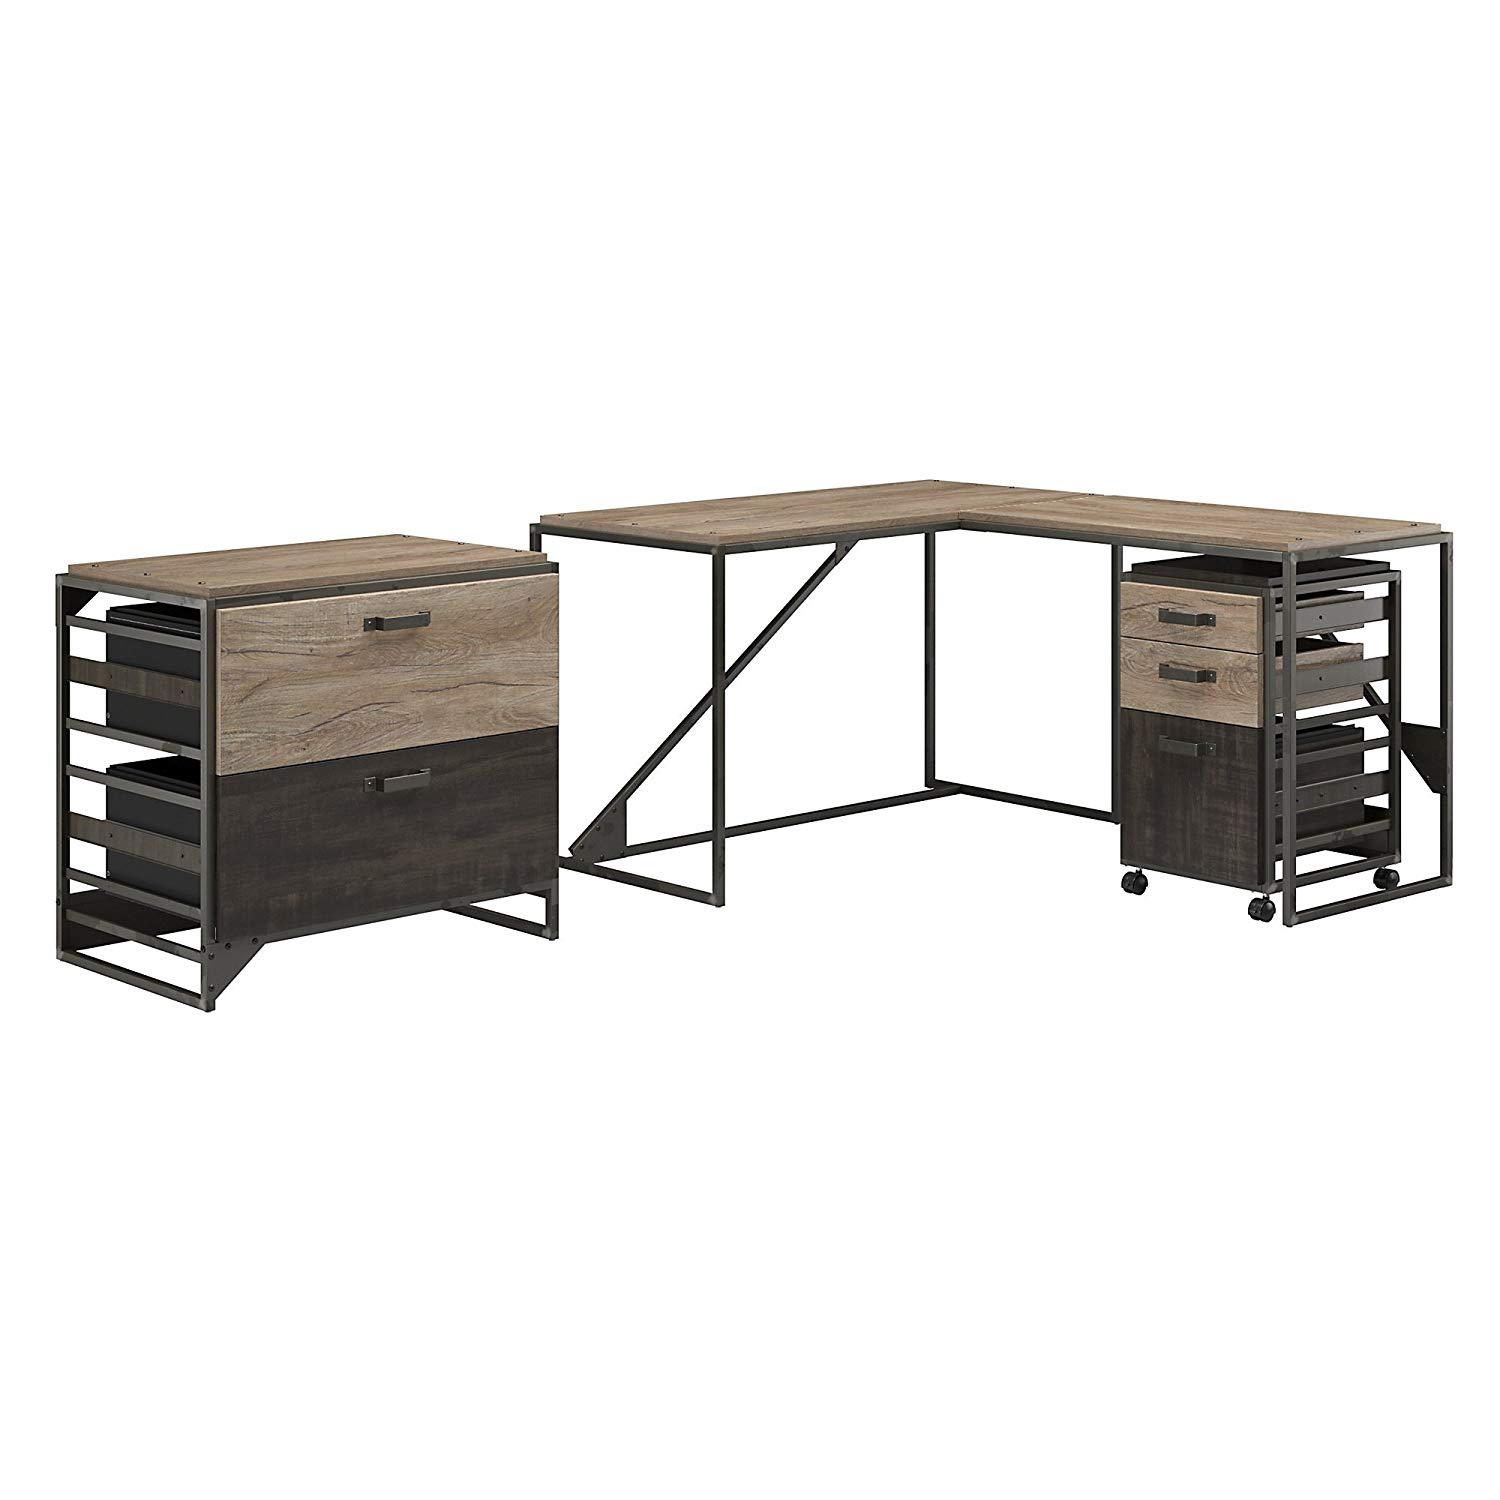 Get Quotations Bush Furniture Refinery 50w L Shaped Desk With 37w Return And File Cabinets In Rustic